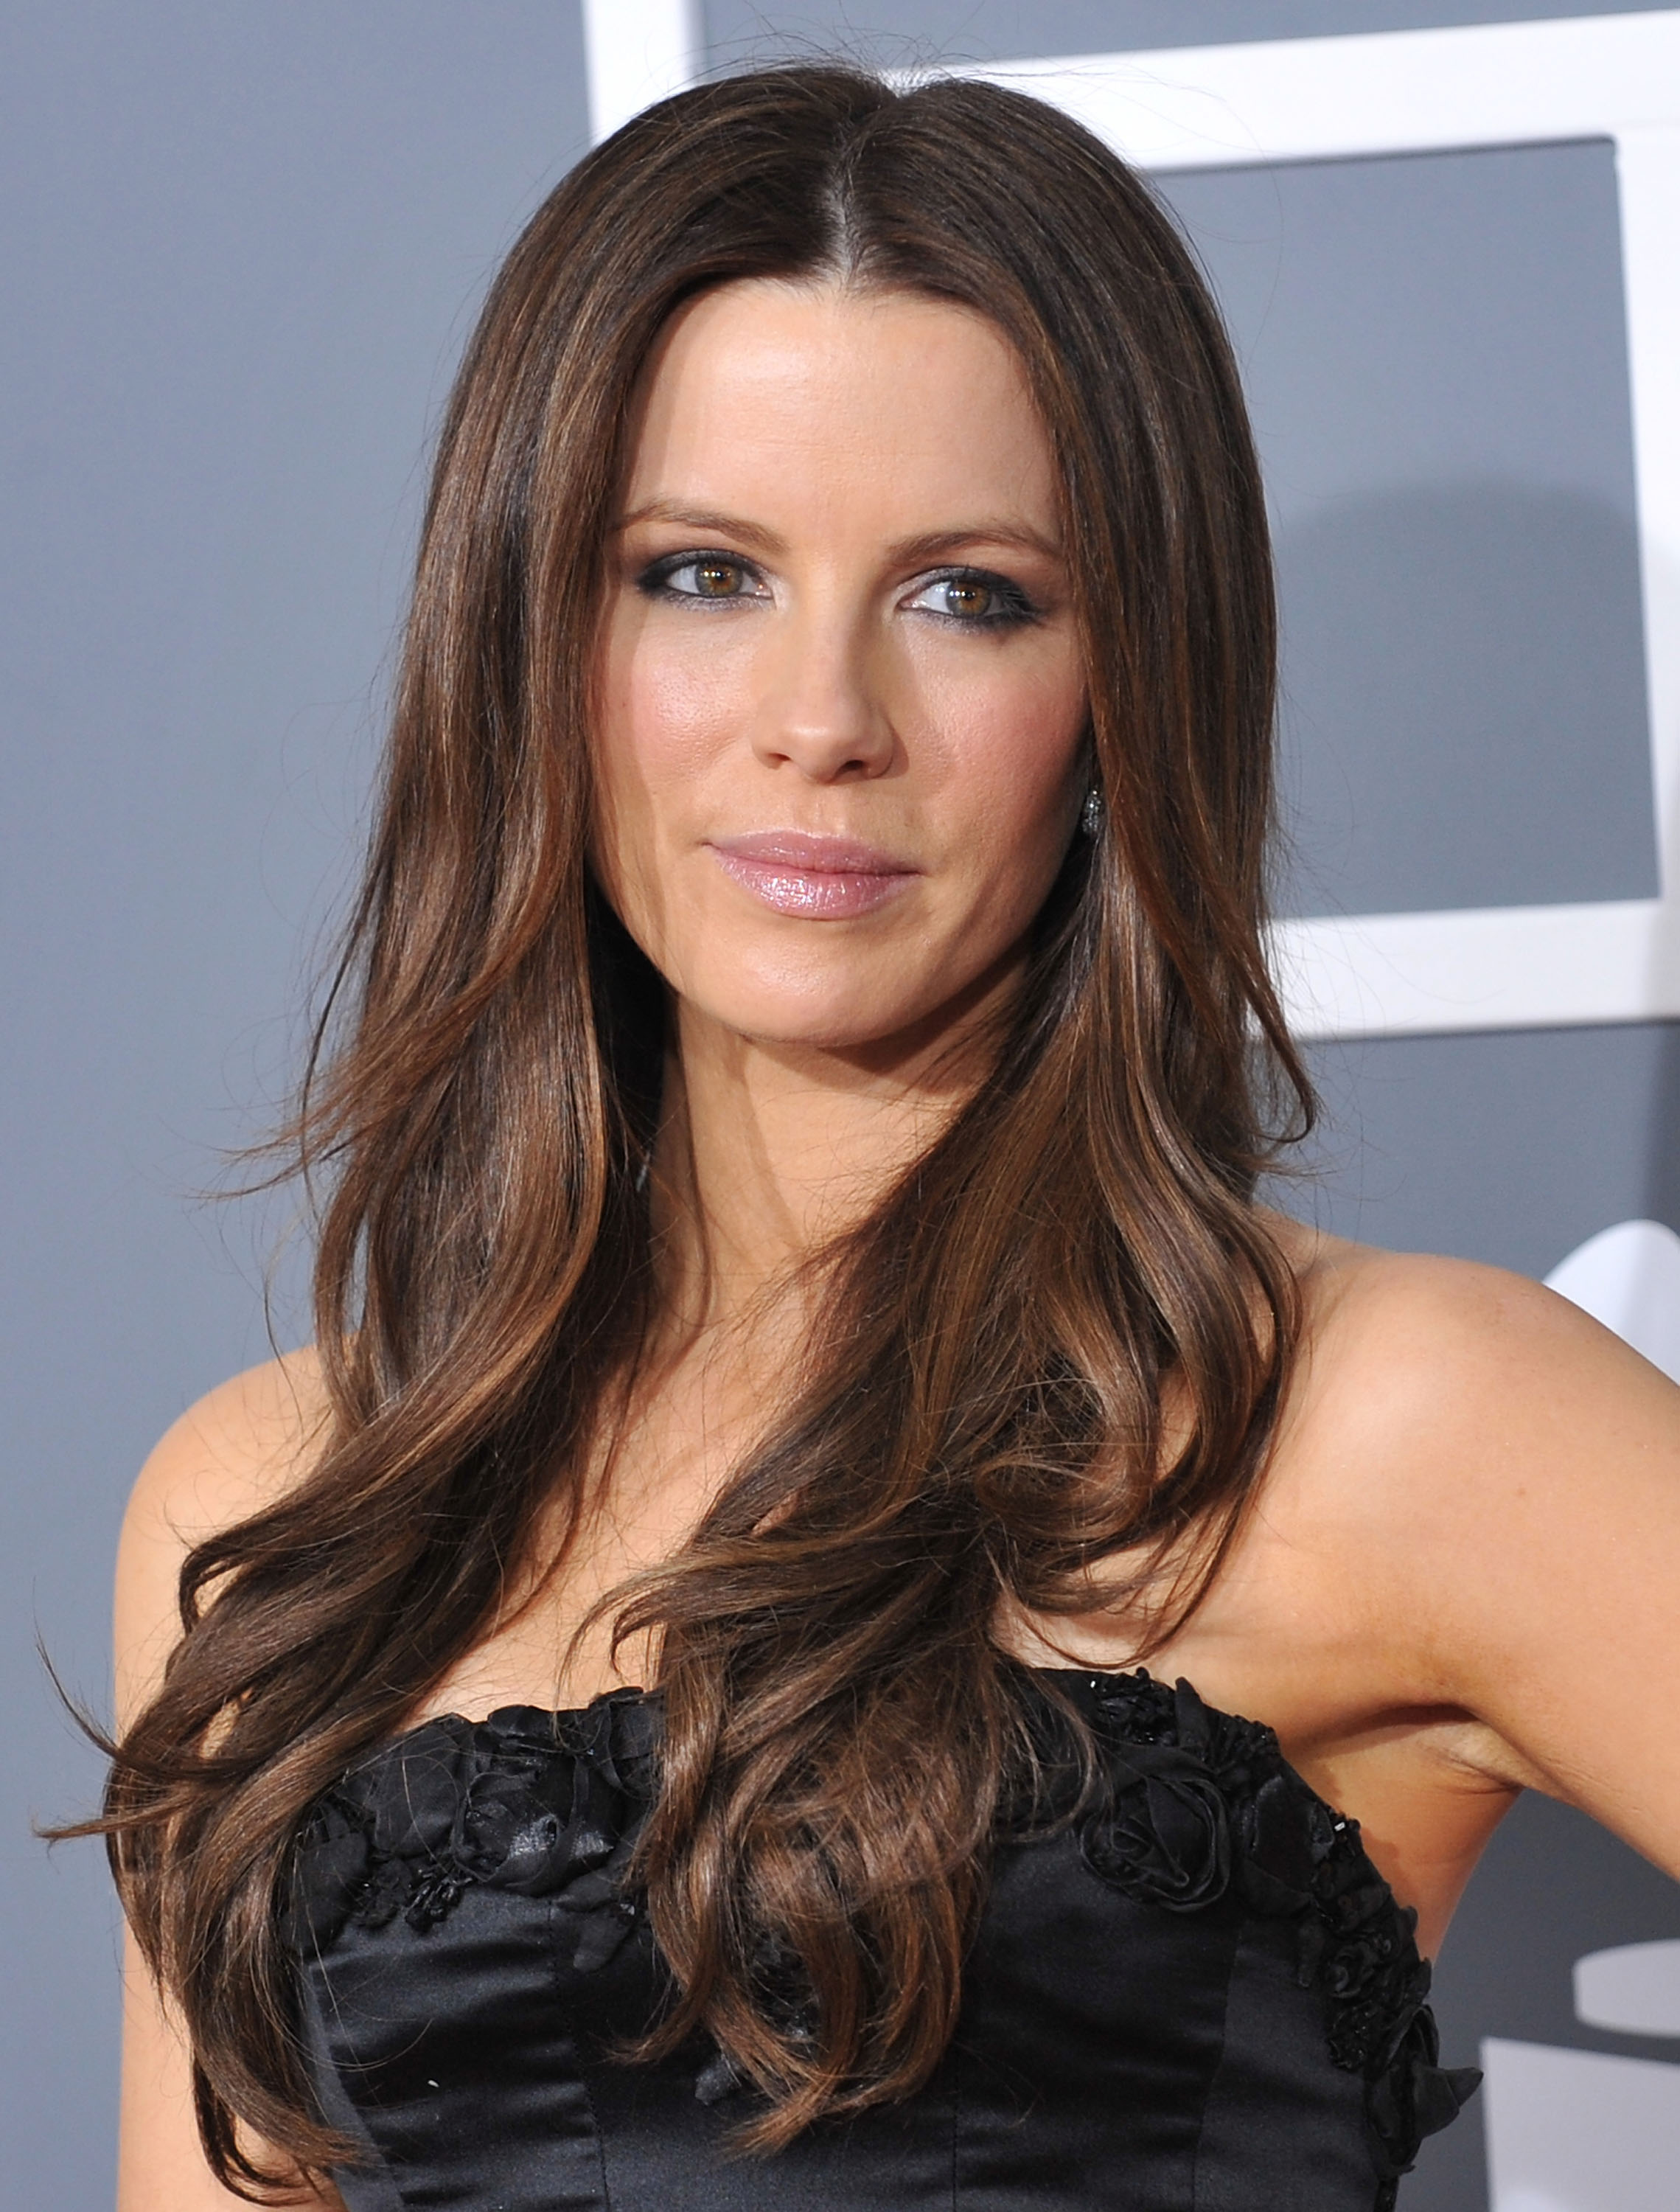 LOS ANGELES, CA - FEBRUARY 08: Actress Kate Beckinsale arrives at the 51st Annual Grammy Awards at the Staples Center on February 8, 2009 in Los Angeles, California. (Photo by Jon Kopaloff/FilmMagic)